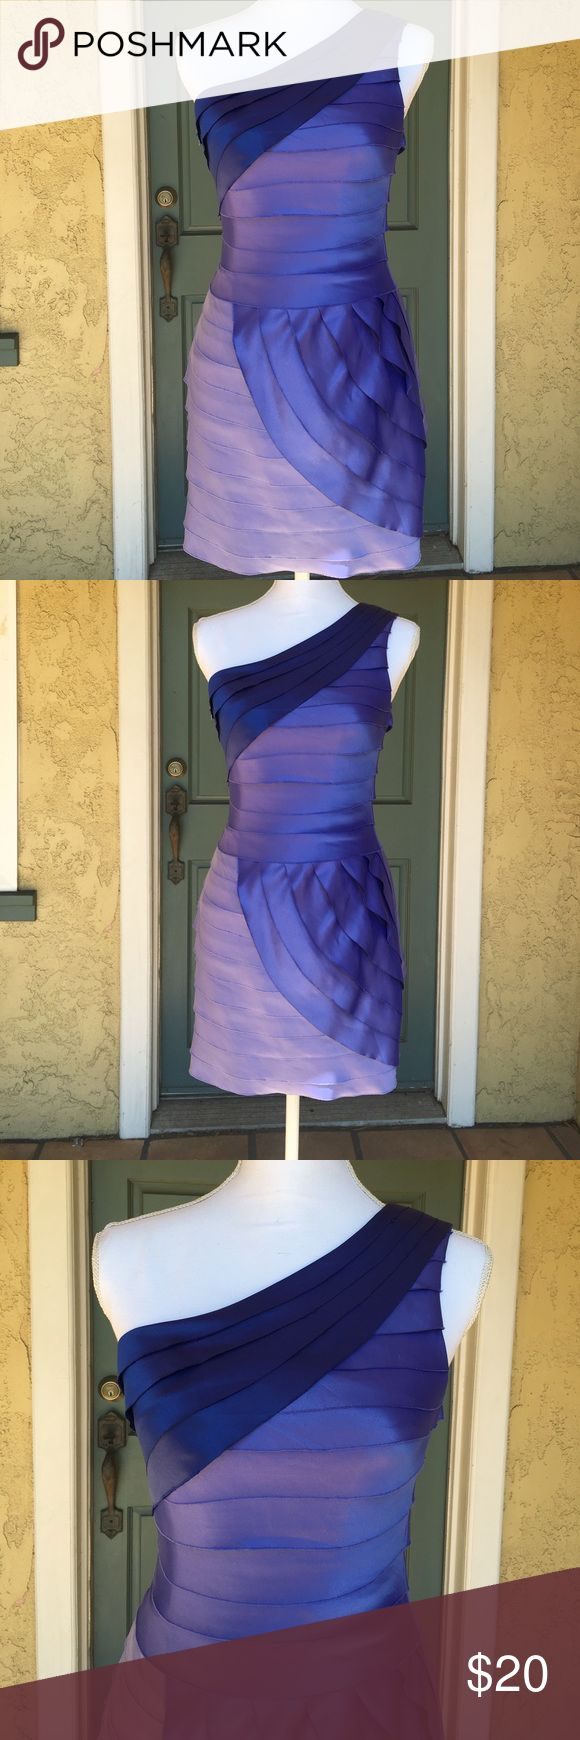 Silky Layered Purple one shoulder cocktail dress One shoulder layered silky dress. Beautiful lilac and dark purple. Forever 21, size 2. Forever 21 Dresses One Shoulder